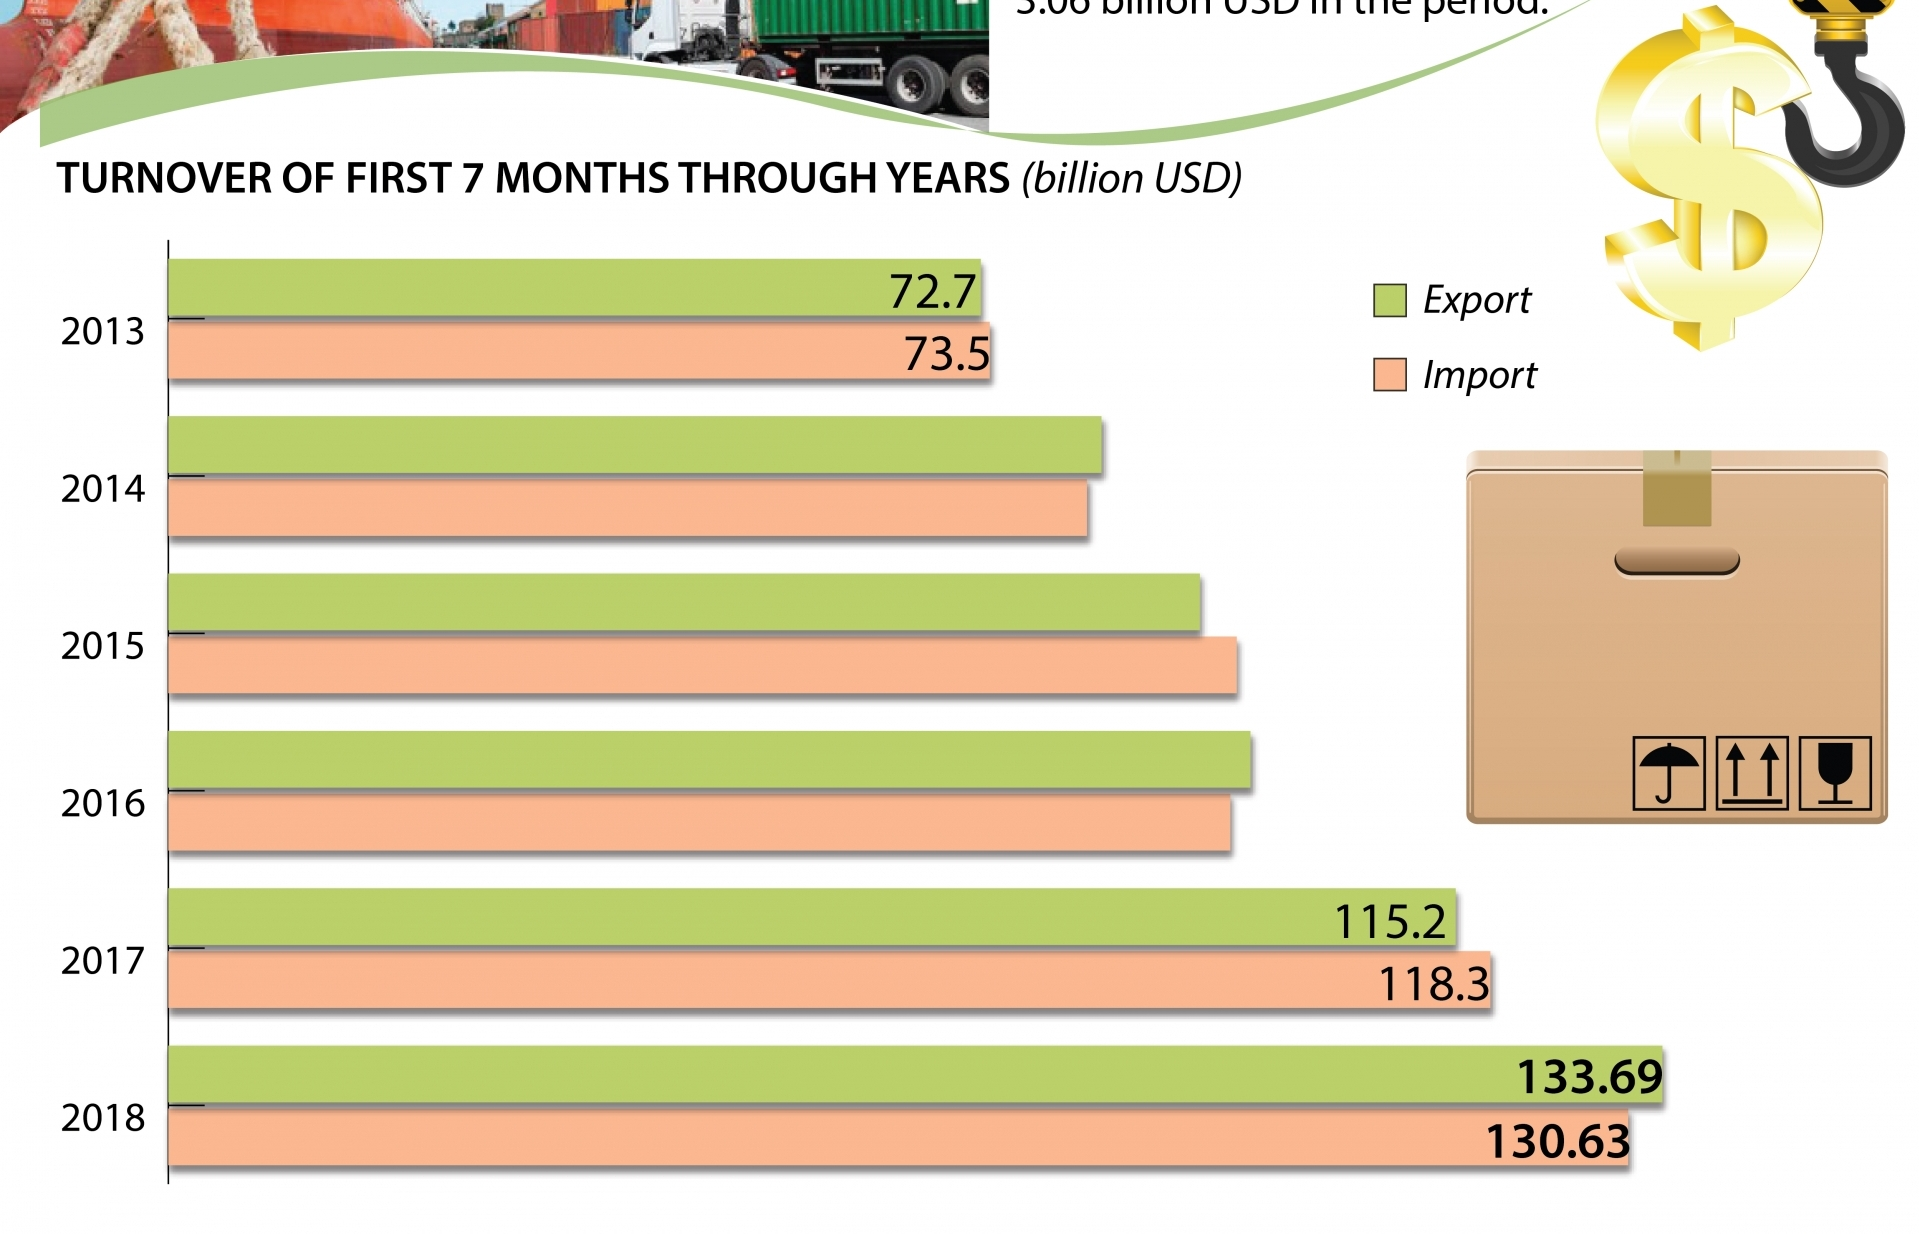 first seven months see trade surplus at 306 billion usd